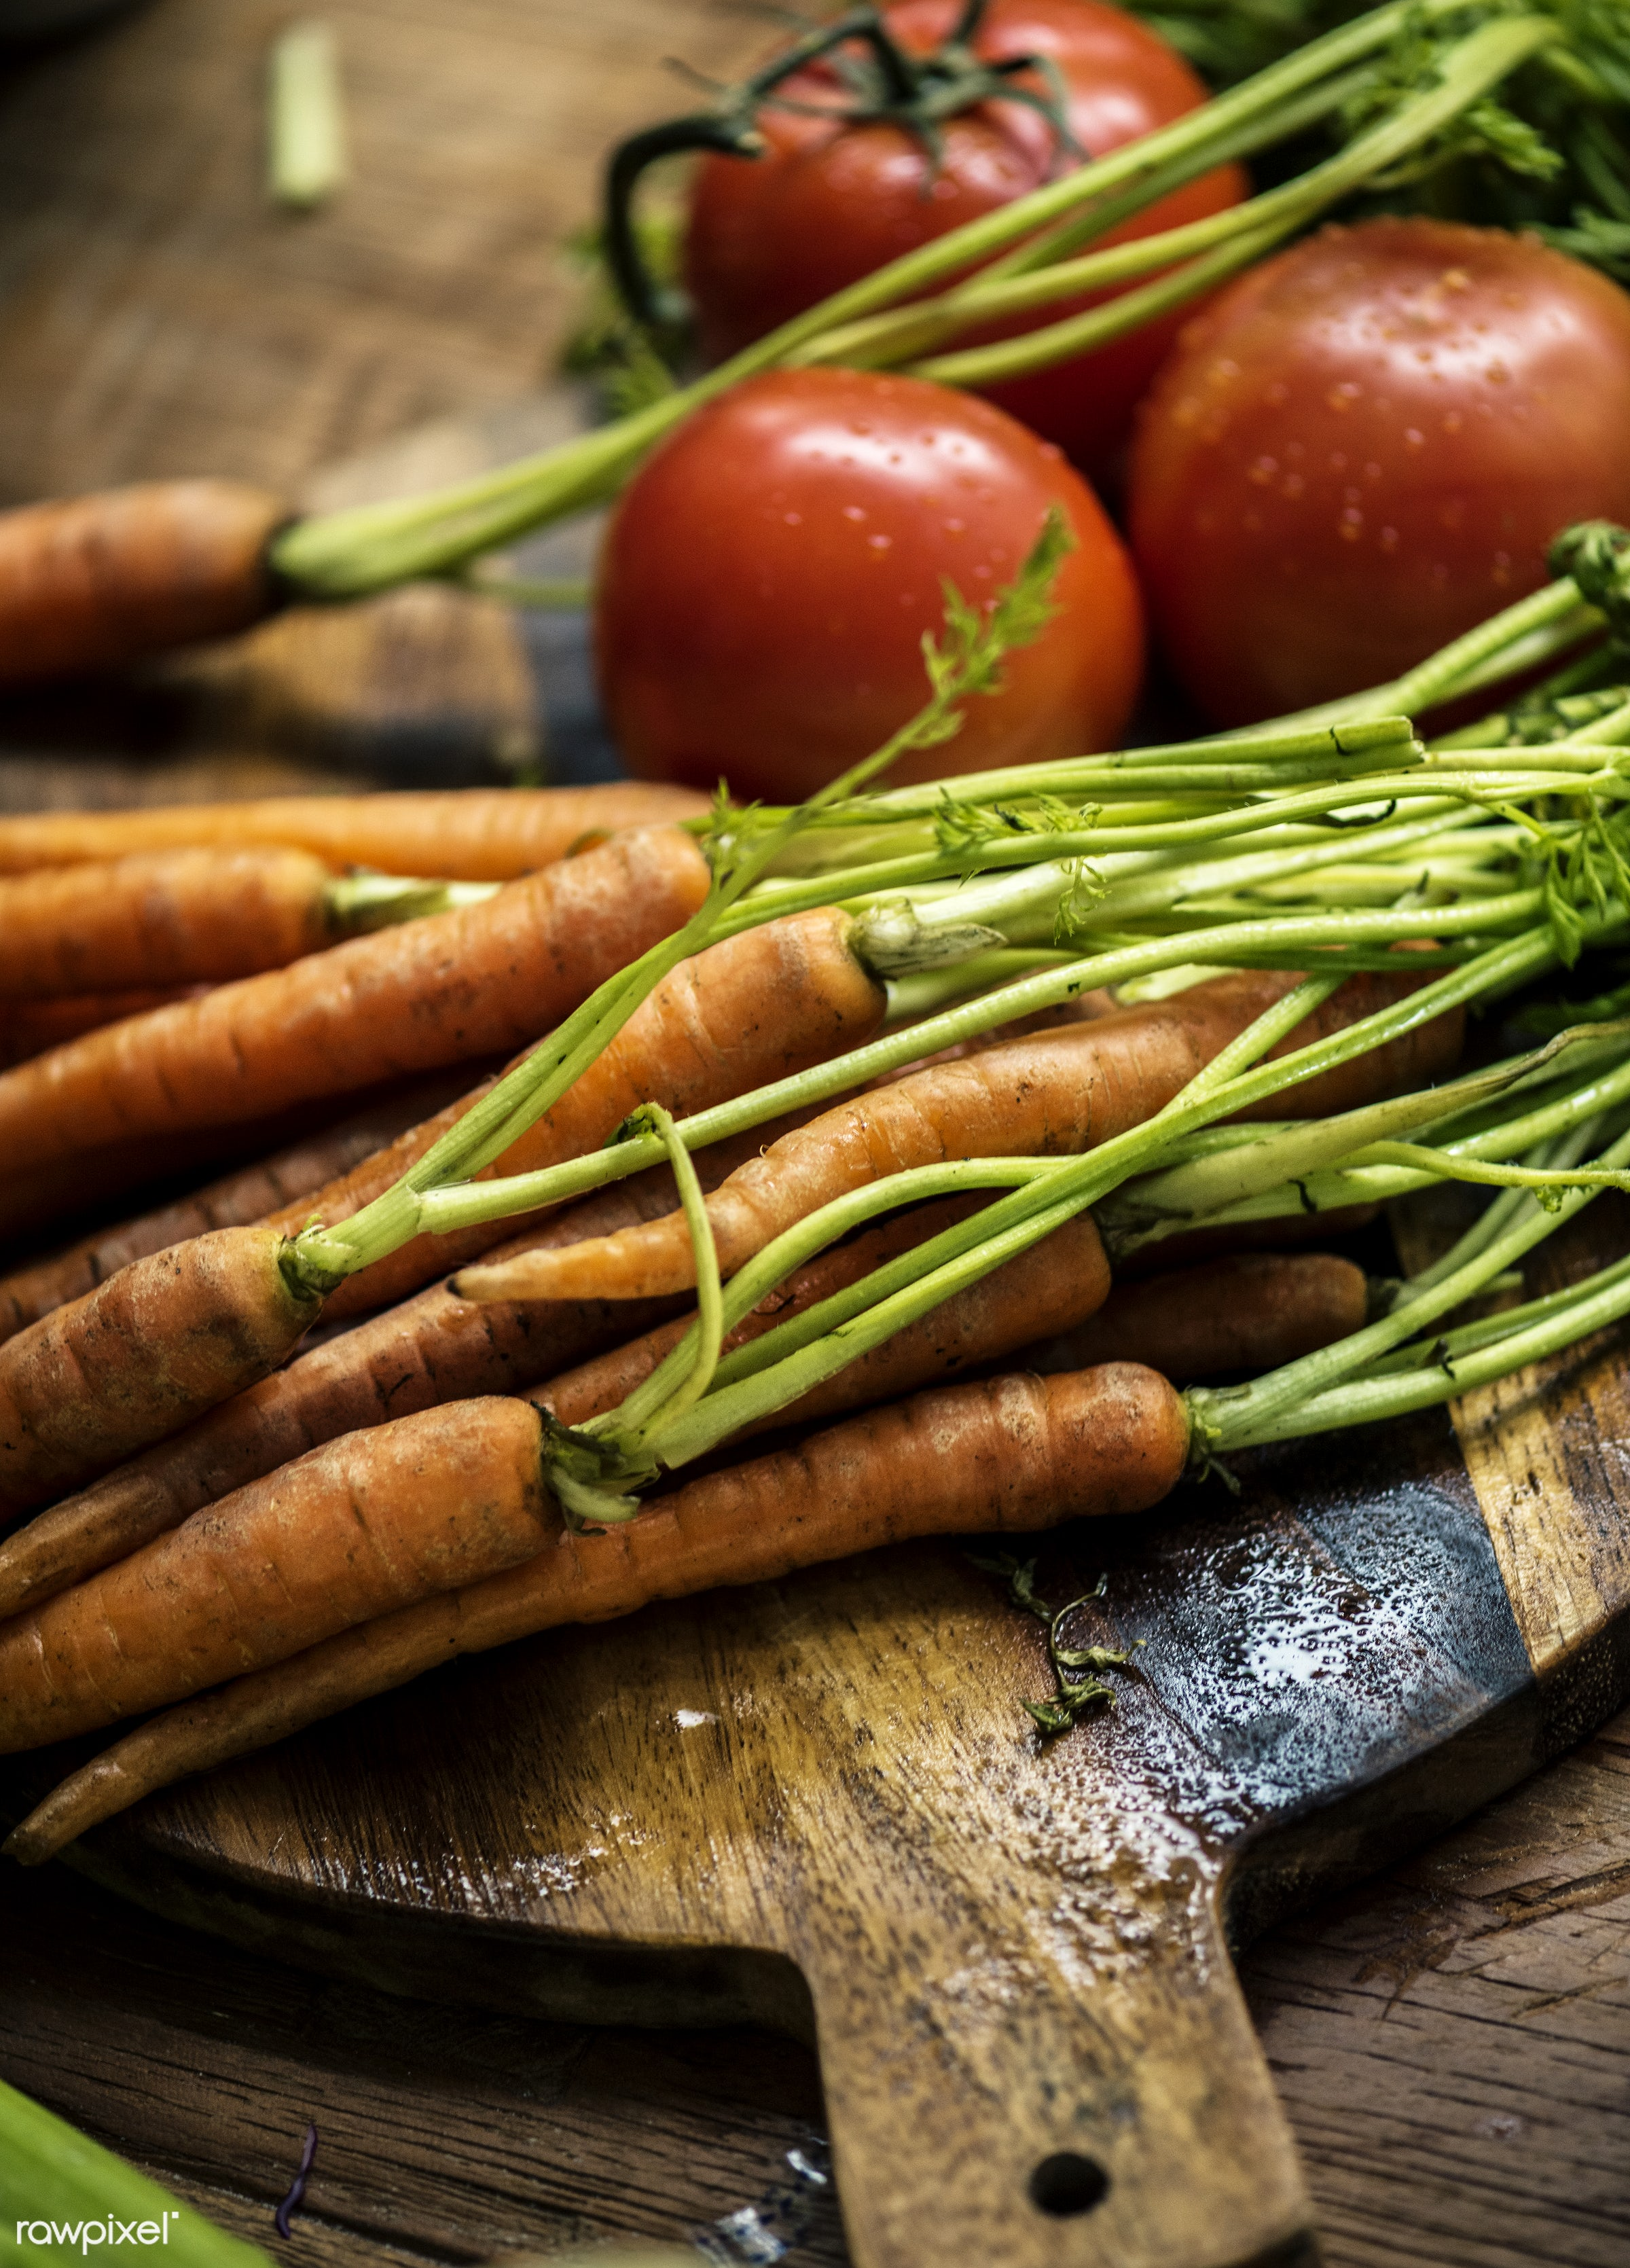 superfood, nobody, tomato, green, nutrients, real, organic, nature, fresh, carrots, vegetable, closeup, wooden table